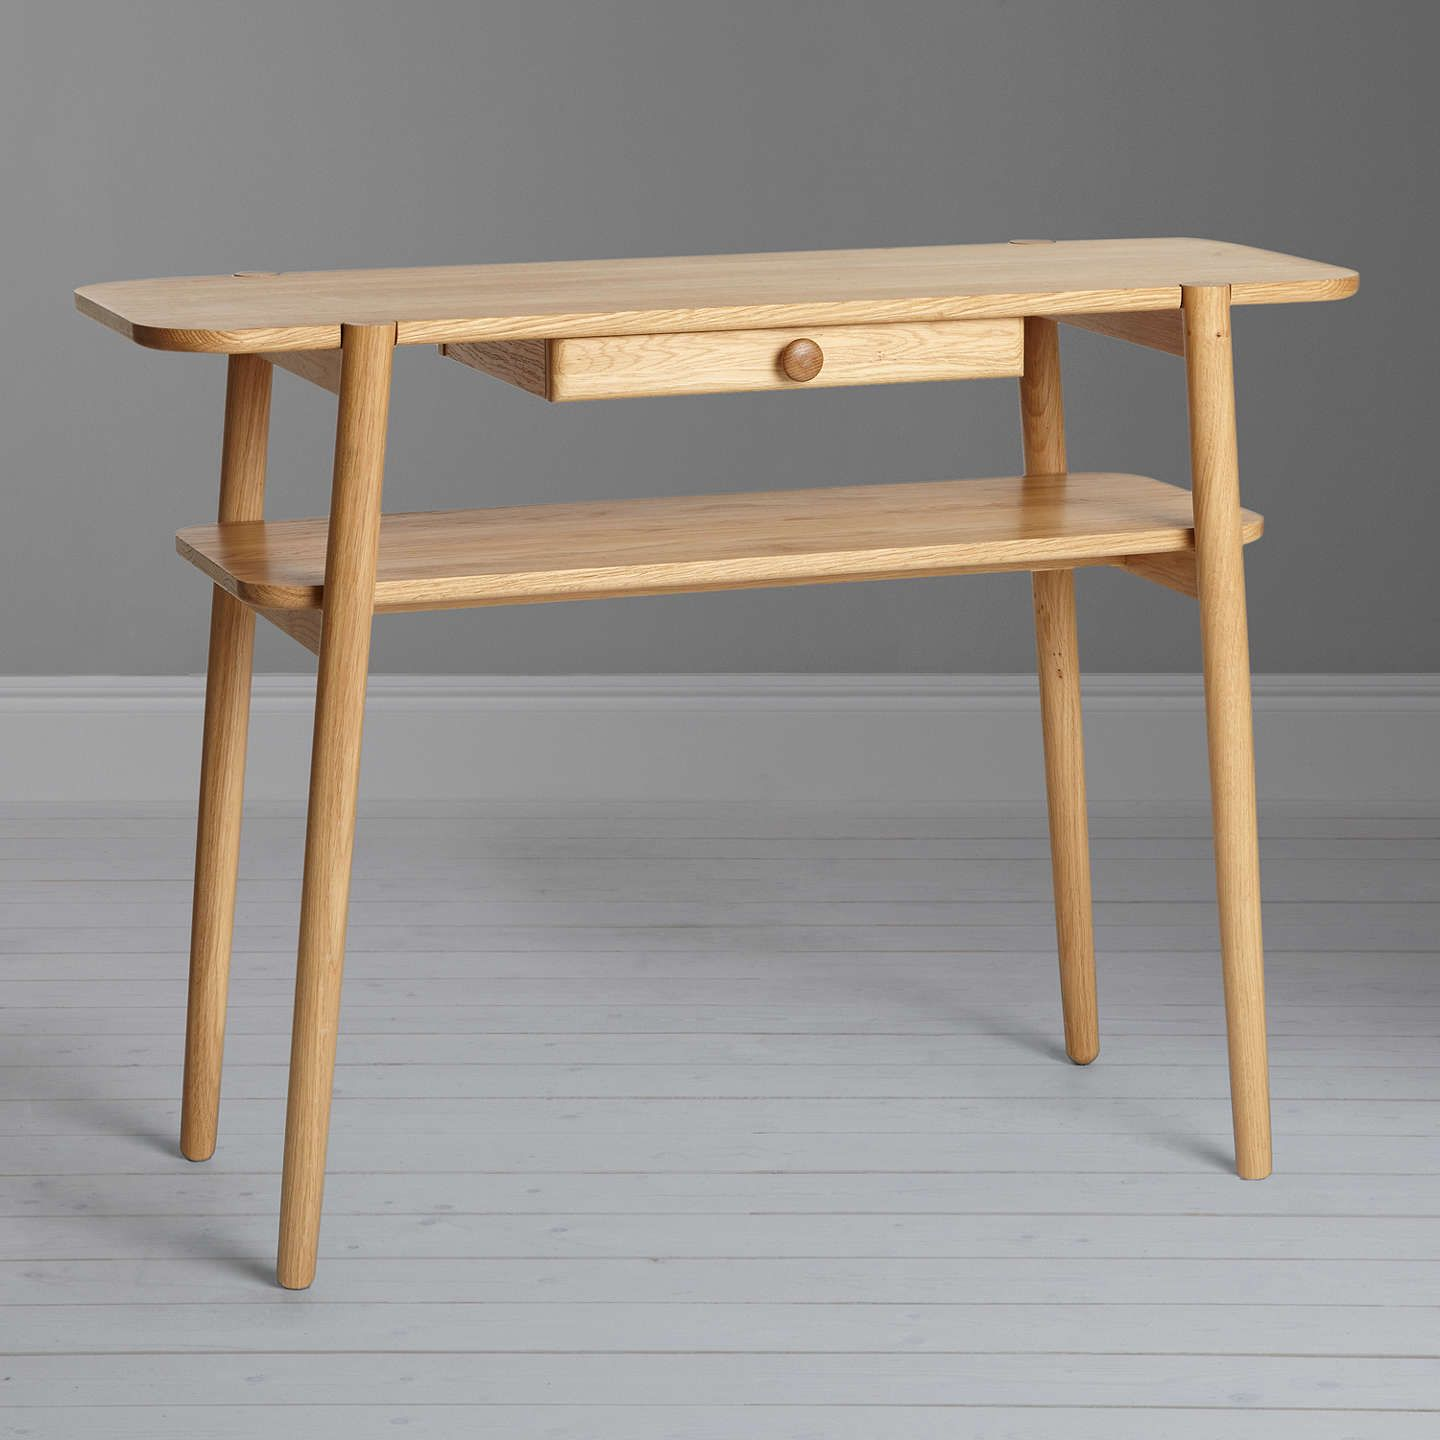 Design project by john lewis no022 console table oak console buydesign project by john lewis no022 console table oak online at johnlewis geotapseo Image collections